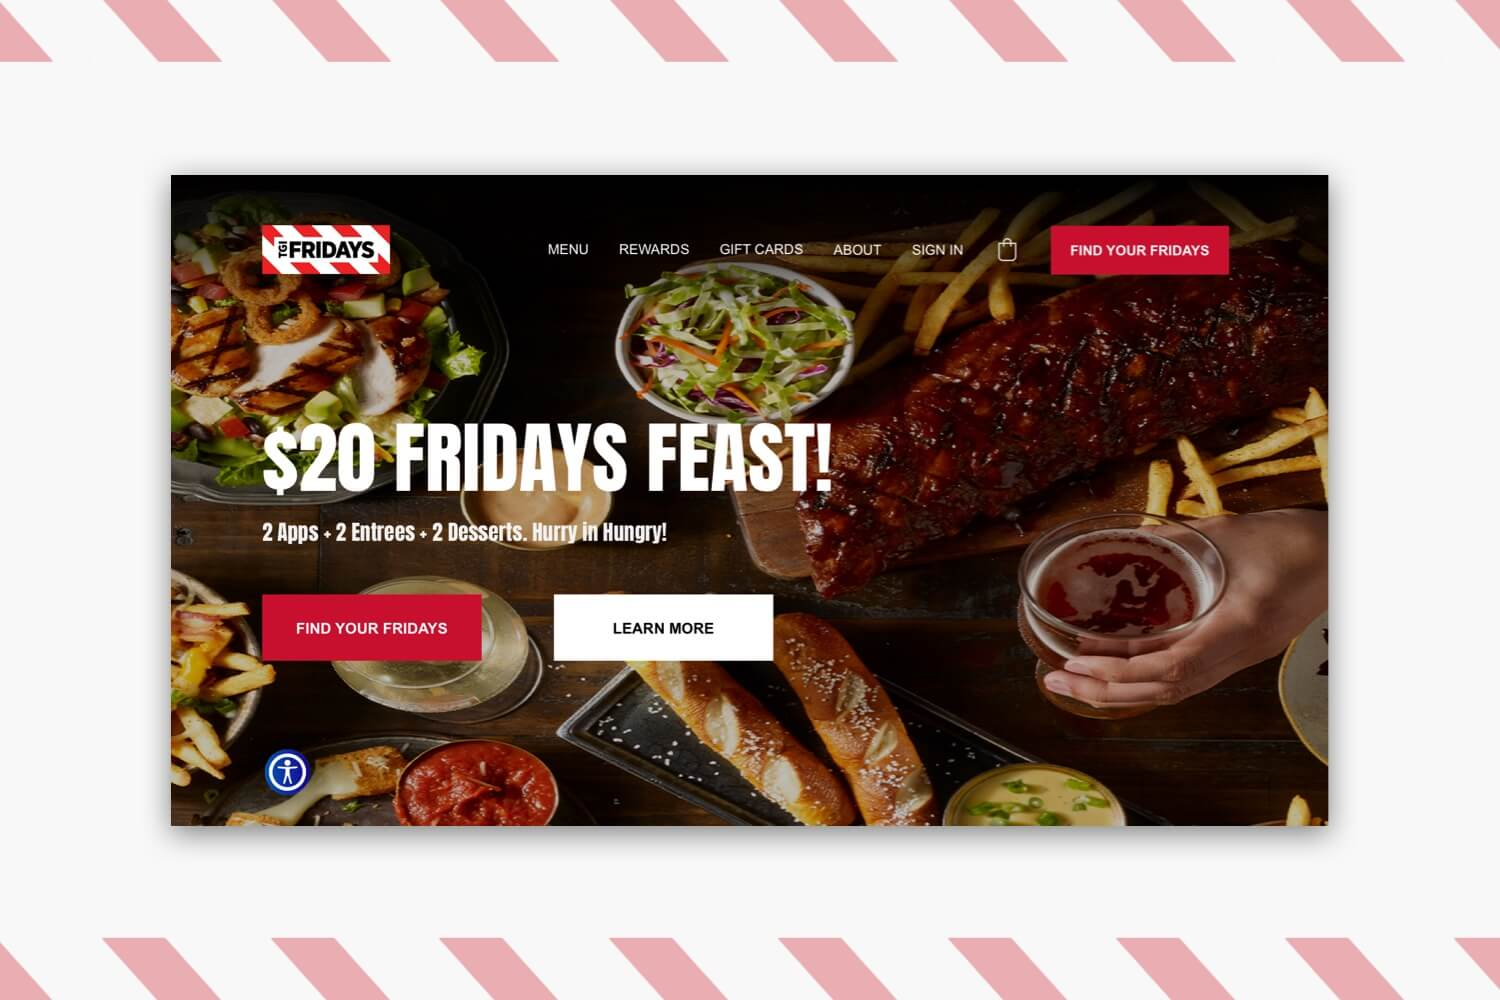 Redesigned header of TGI Fridays' website.